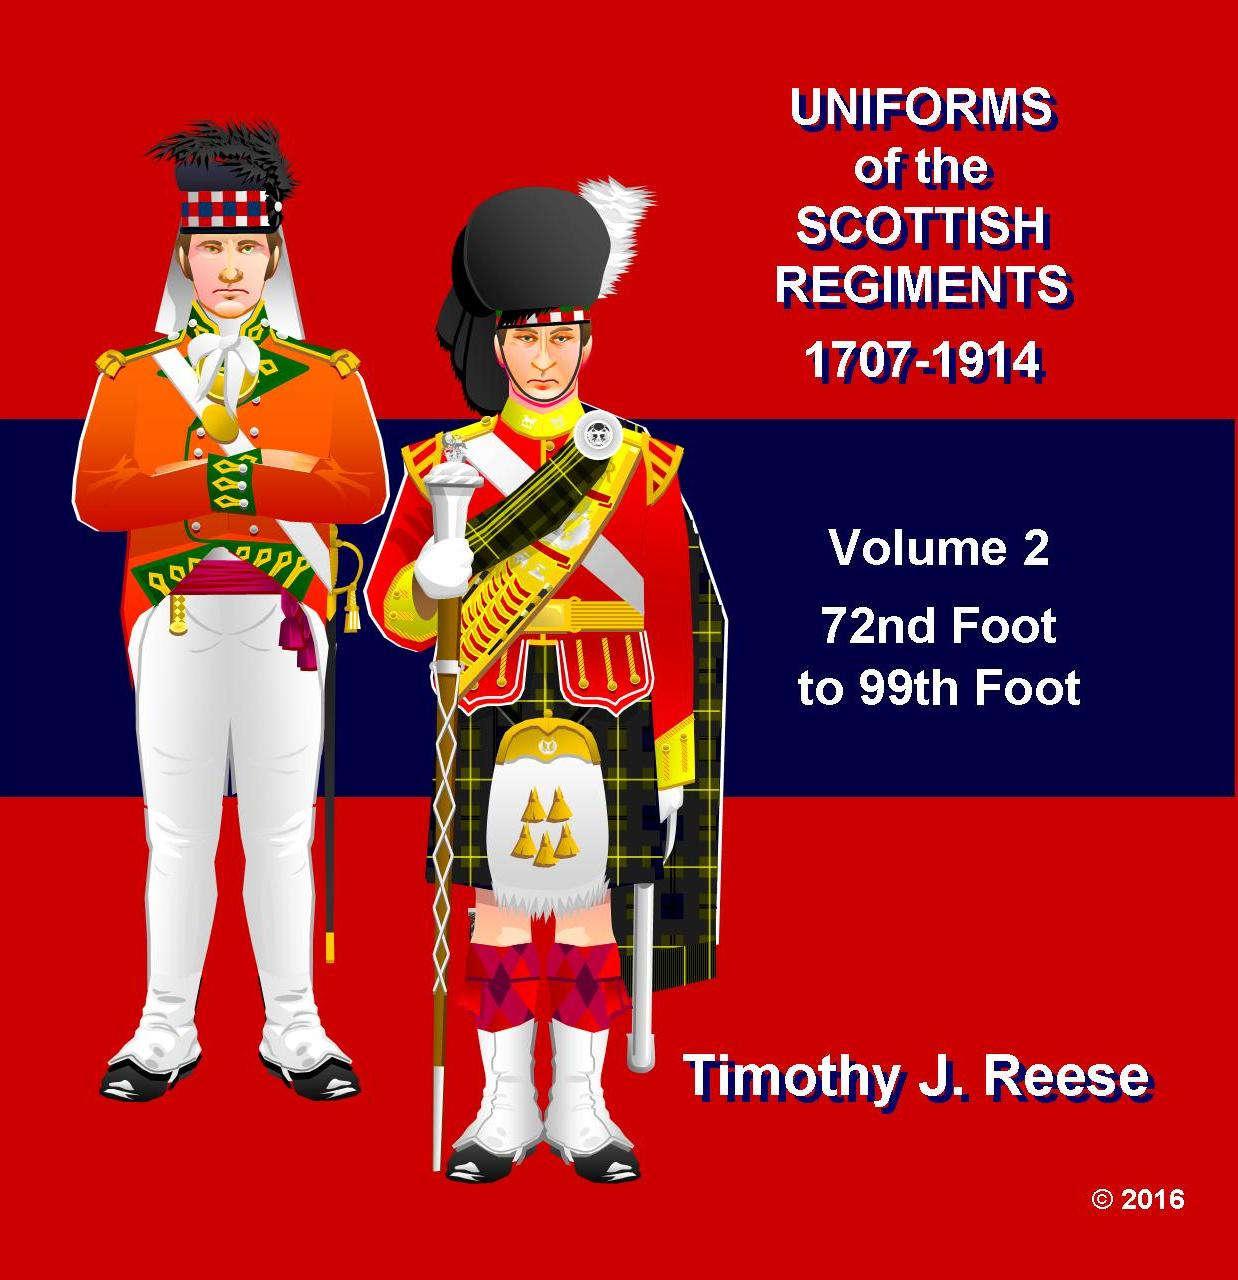 SAMPLE PLATE: Uniforms of the Scottish Regiments, 1707-1914, Vol. 2, 72nd Foot to 99th Foot